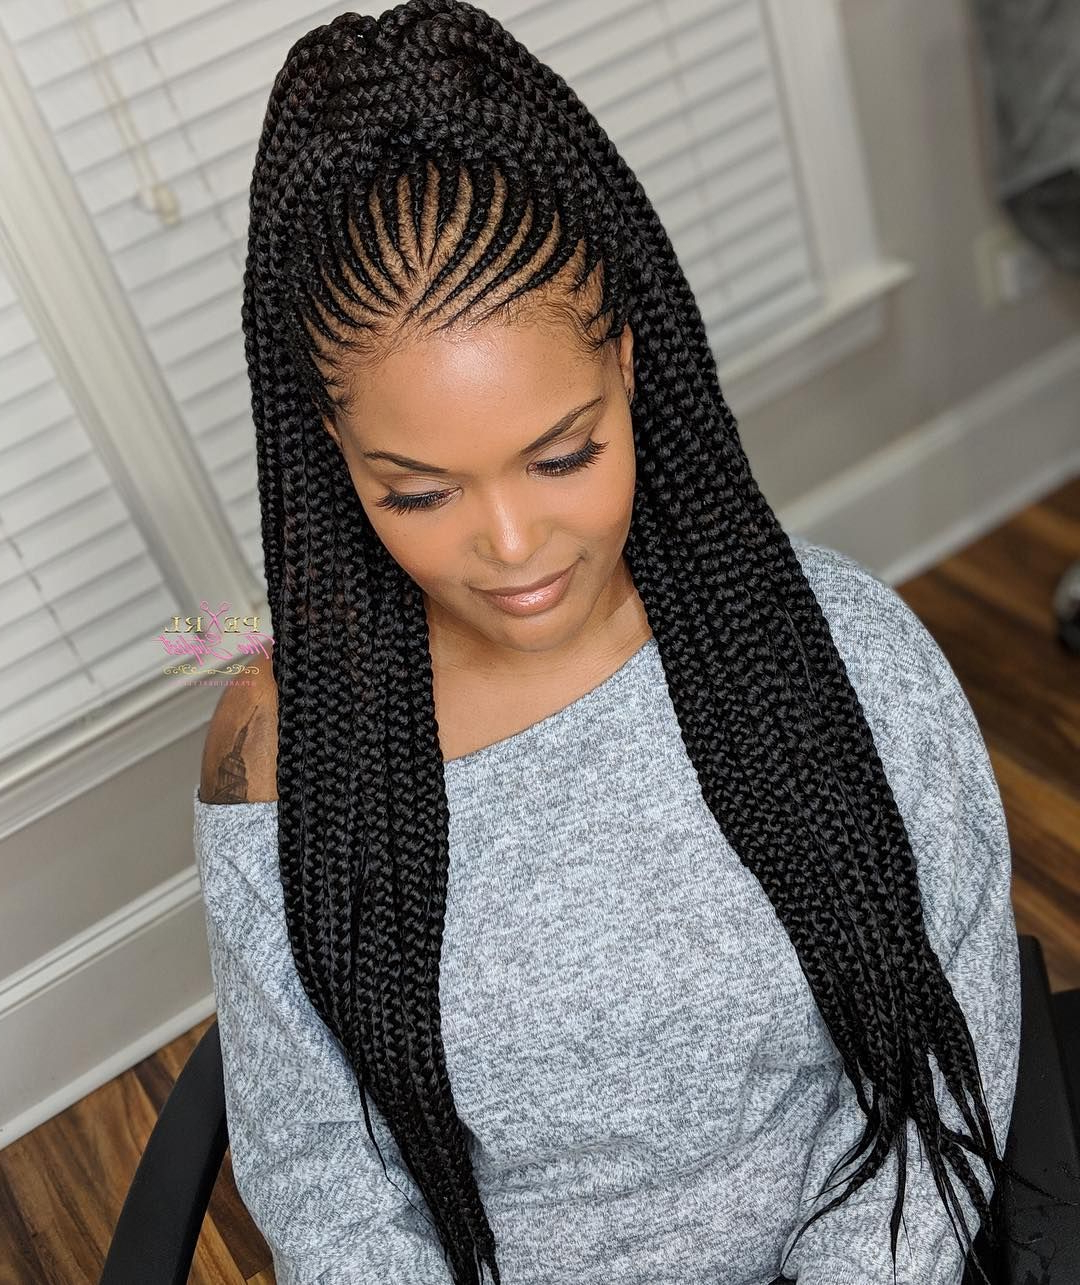 Ladies Waist Length Tribal Braids Can Be Worn Multiple Ways In Current Long Hairstyles With Multiple Braids (View 8 of 20)